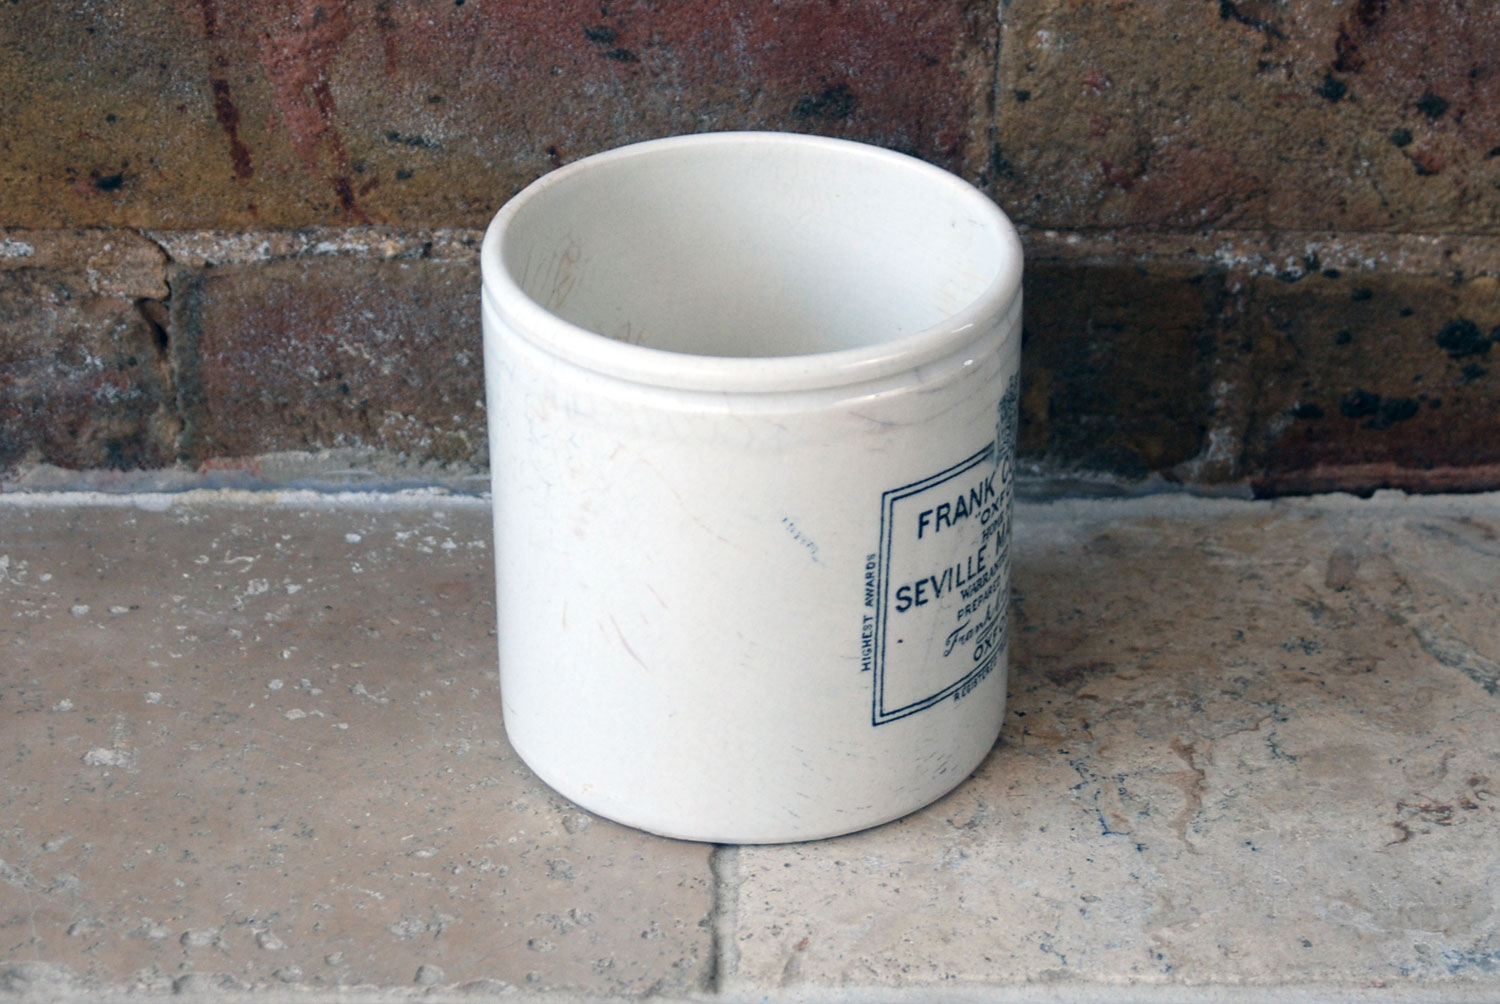 antique victorian white ironstone english advertising pot frank cooper marmalade rare 2 pound large chubby pot